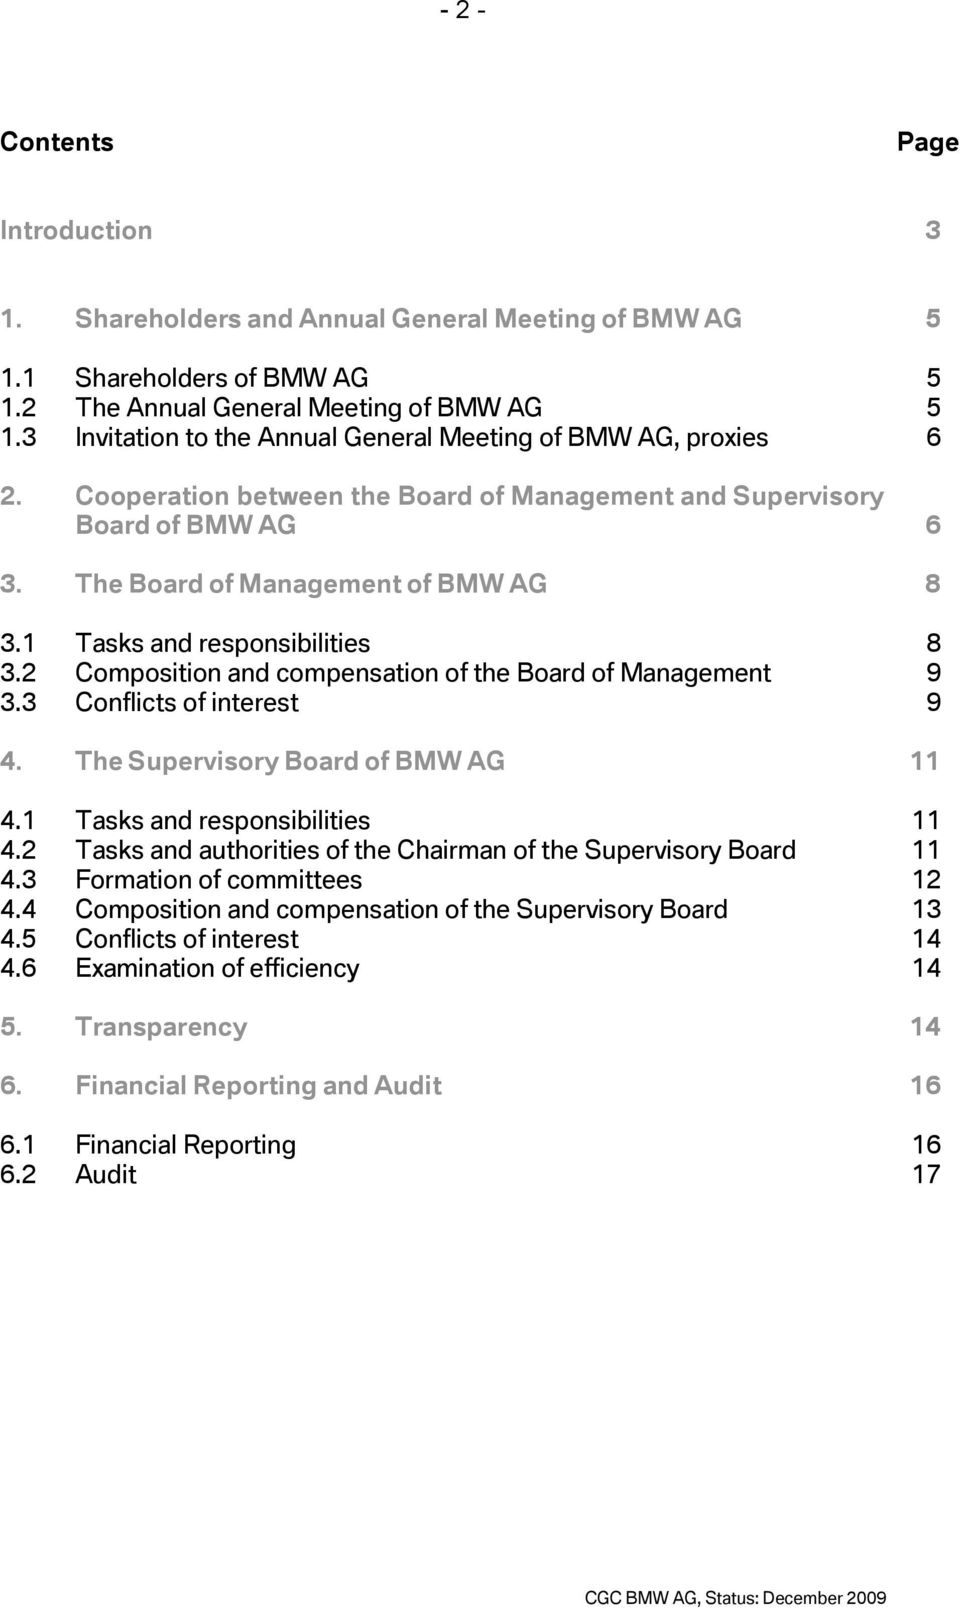 1 Tasks and responsibilities 8 3.2 Composition and compensation of the Board of Management 9 3.3 Conflicts of interest 9 4. The Supervisory Board of BMW AG 11 4.1 Tasks and responsibilities 11 4.